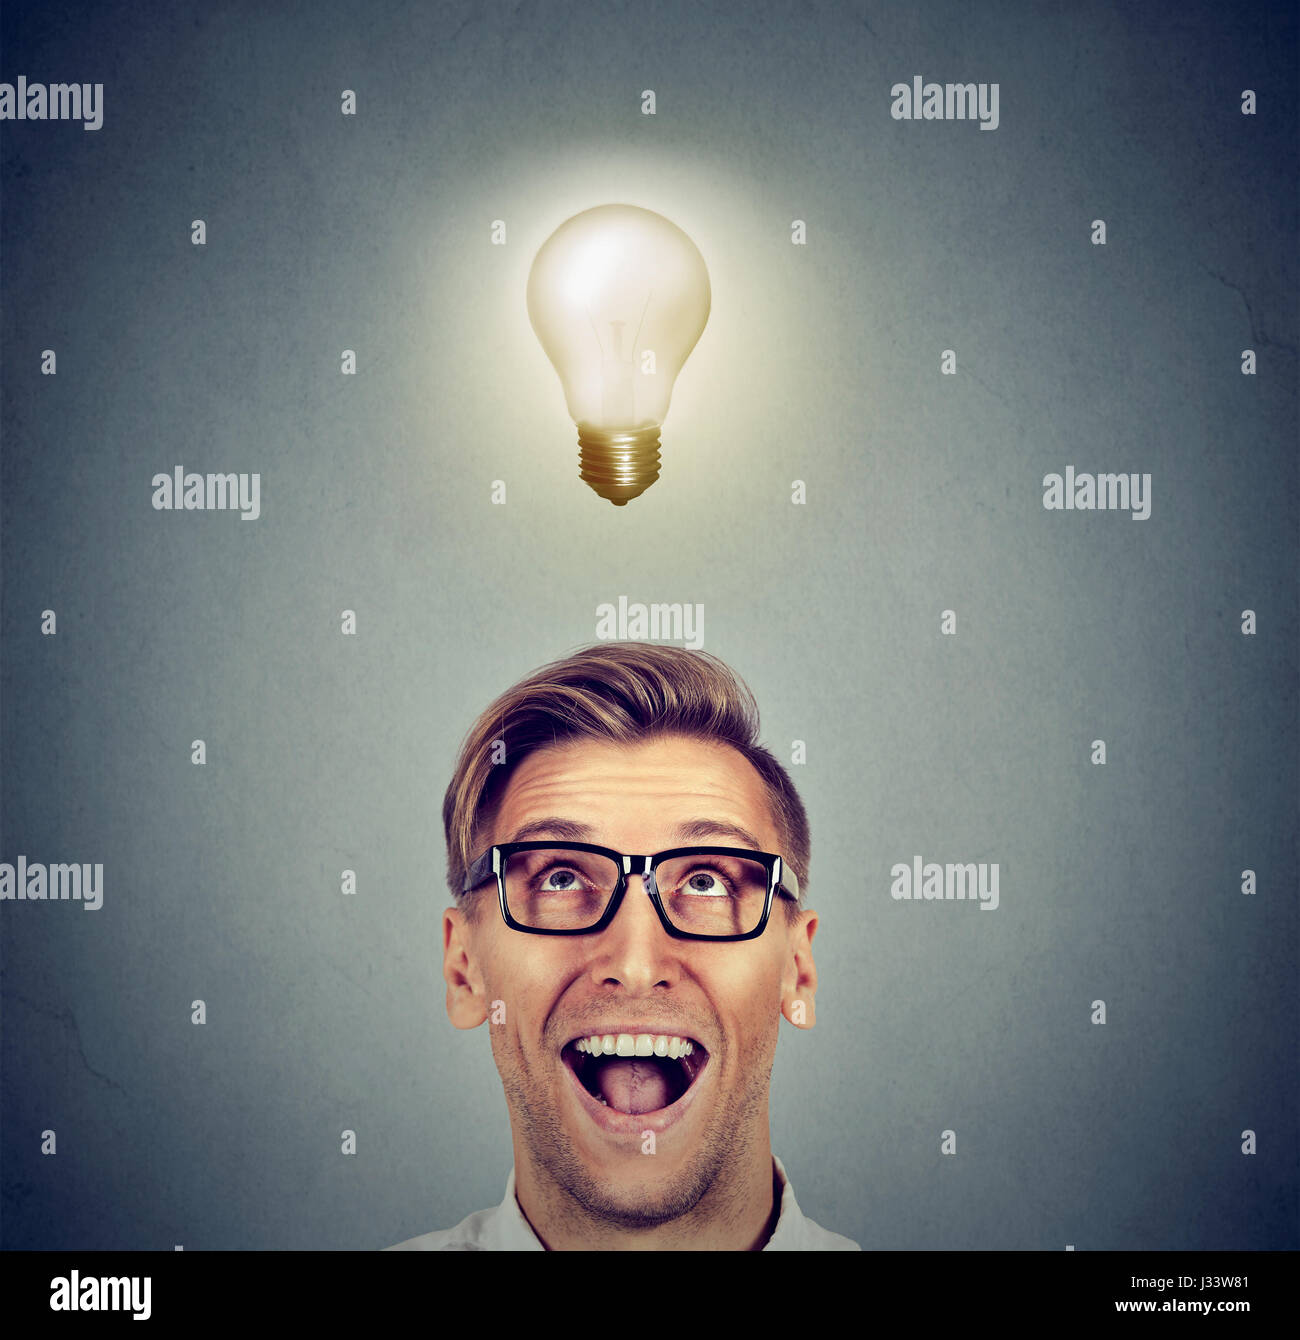 Happy man in glasses looking up at bright light idea bulb above head isolated on gray wall background - Stock Image